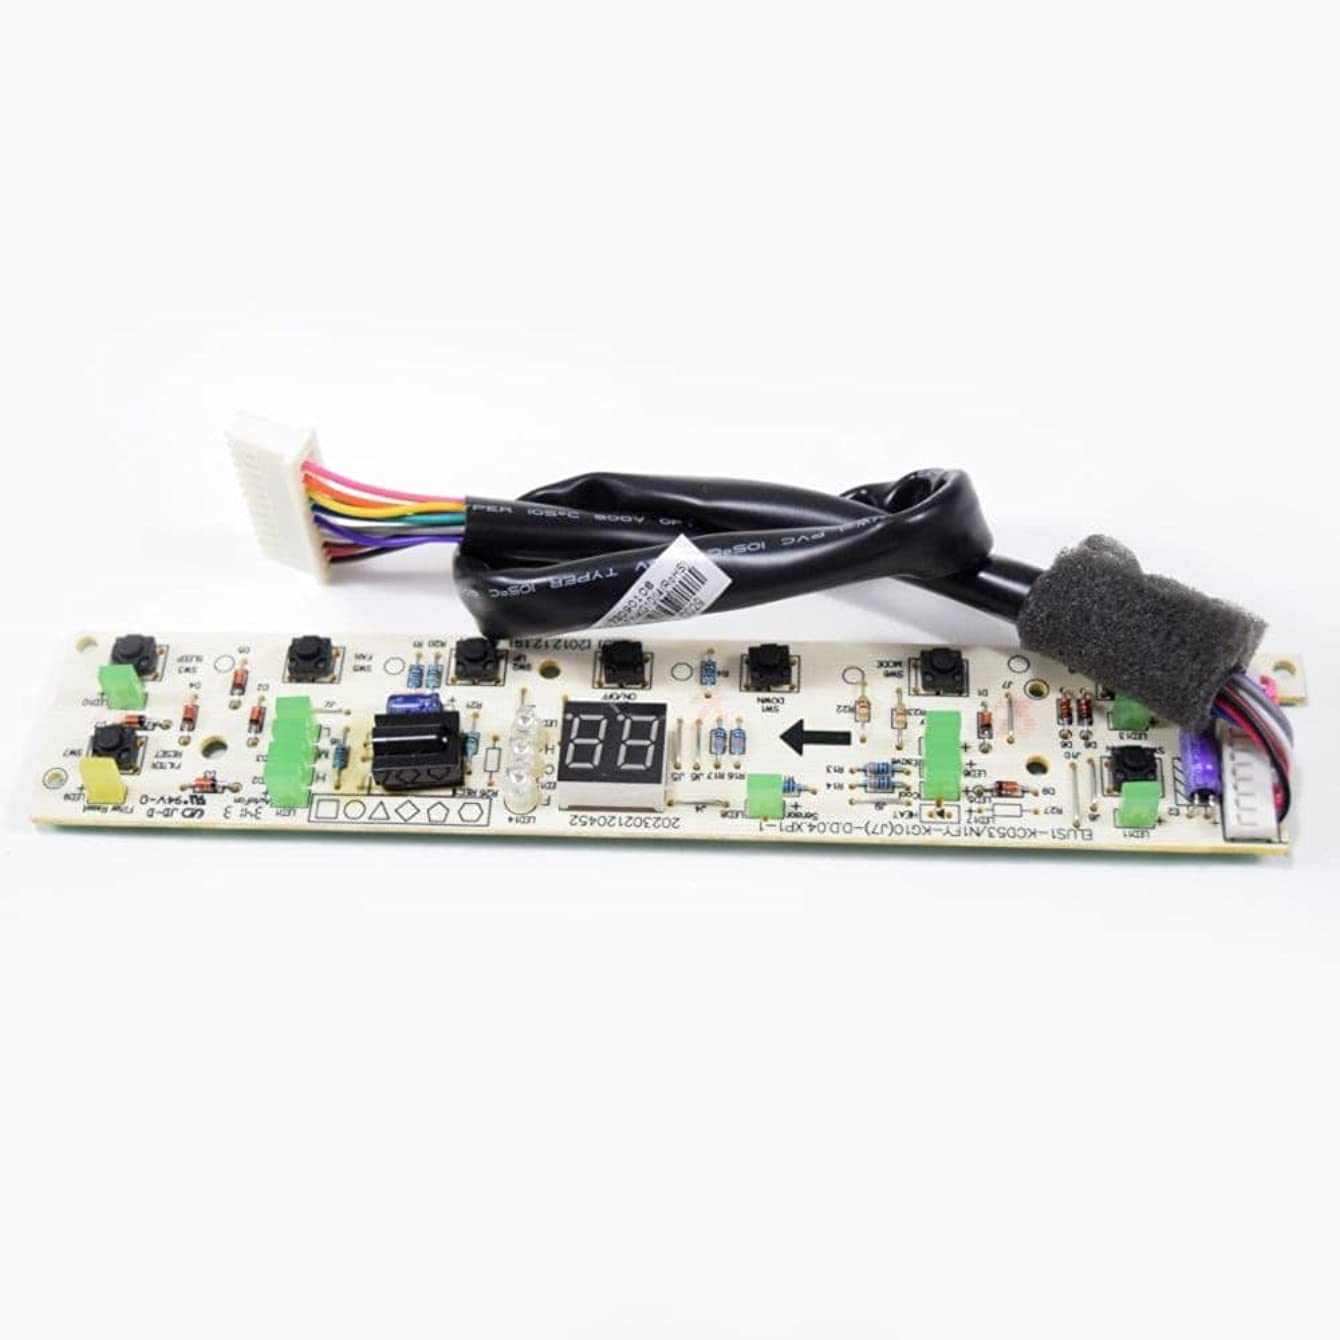 5304483709 Room Air Conditioner Electronic Control Board Assembly Genuine Original Equipment Manufacturer (OEM) Part